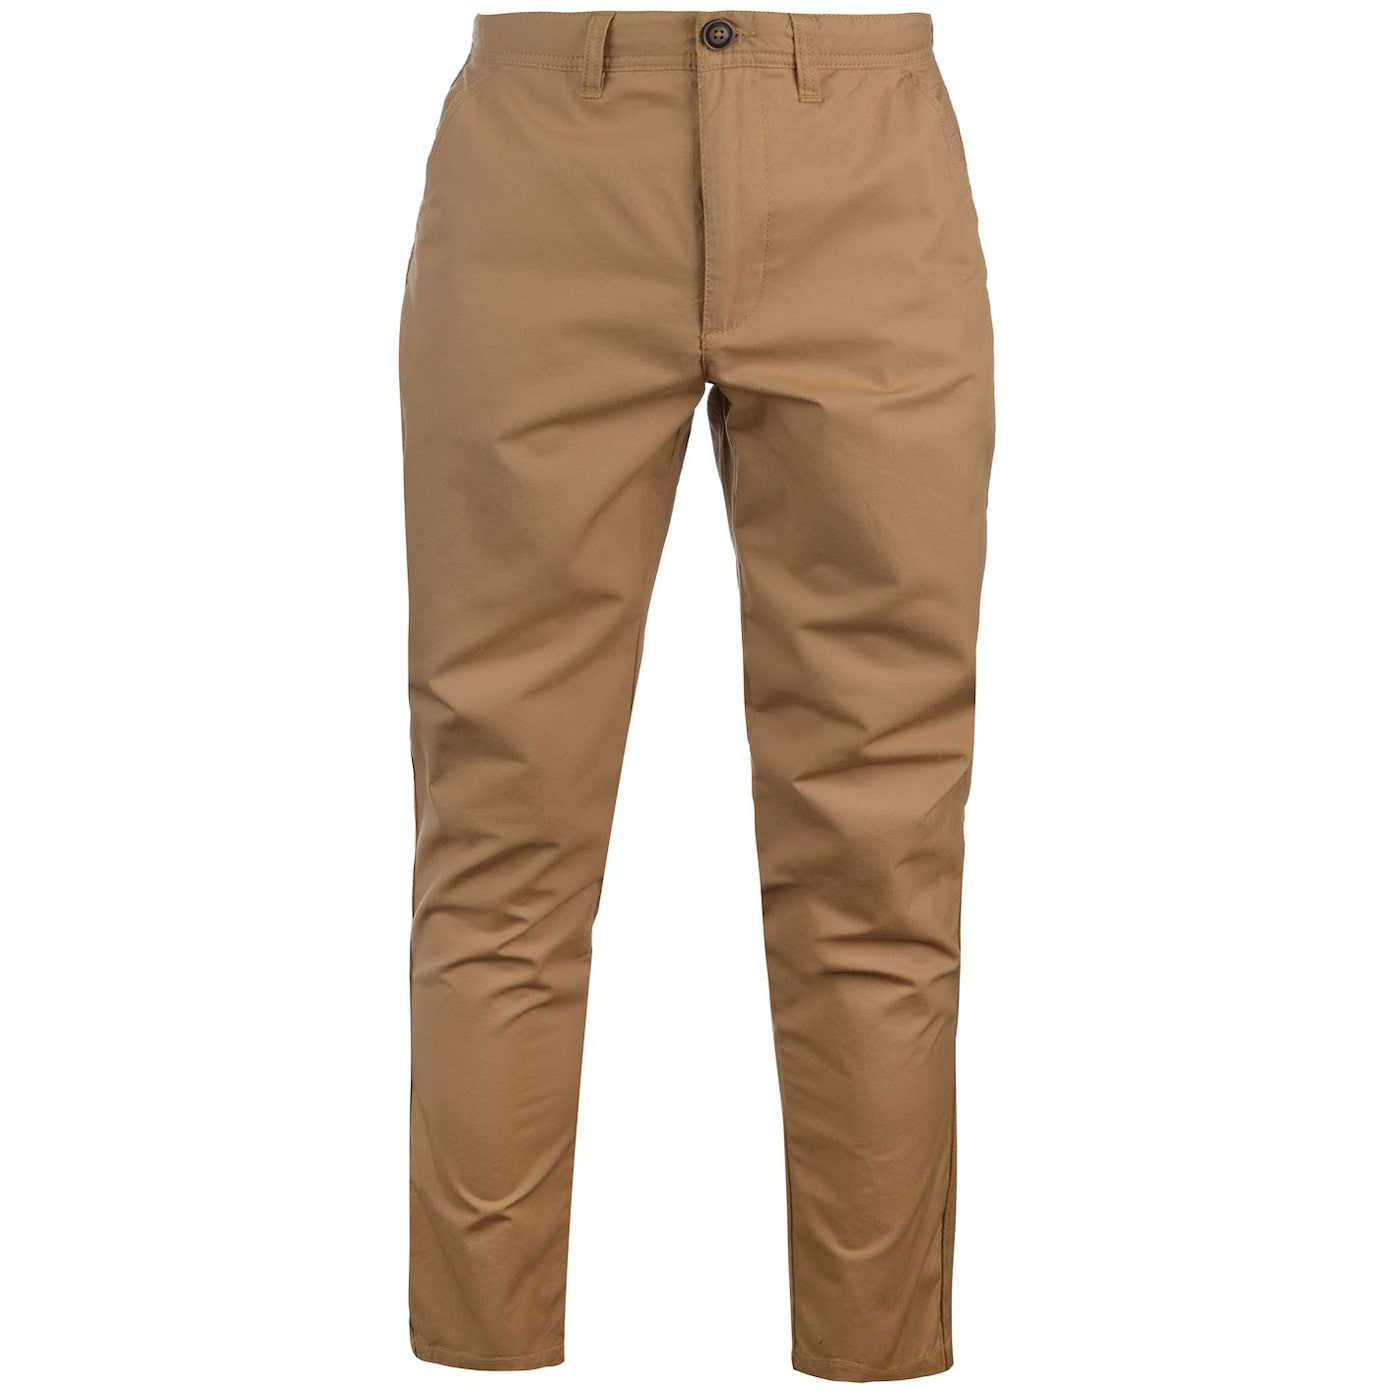 Pierre Cardin Tape Chinos Mens